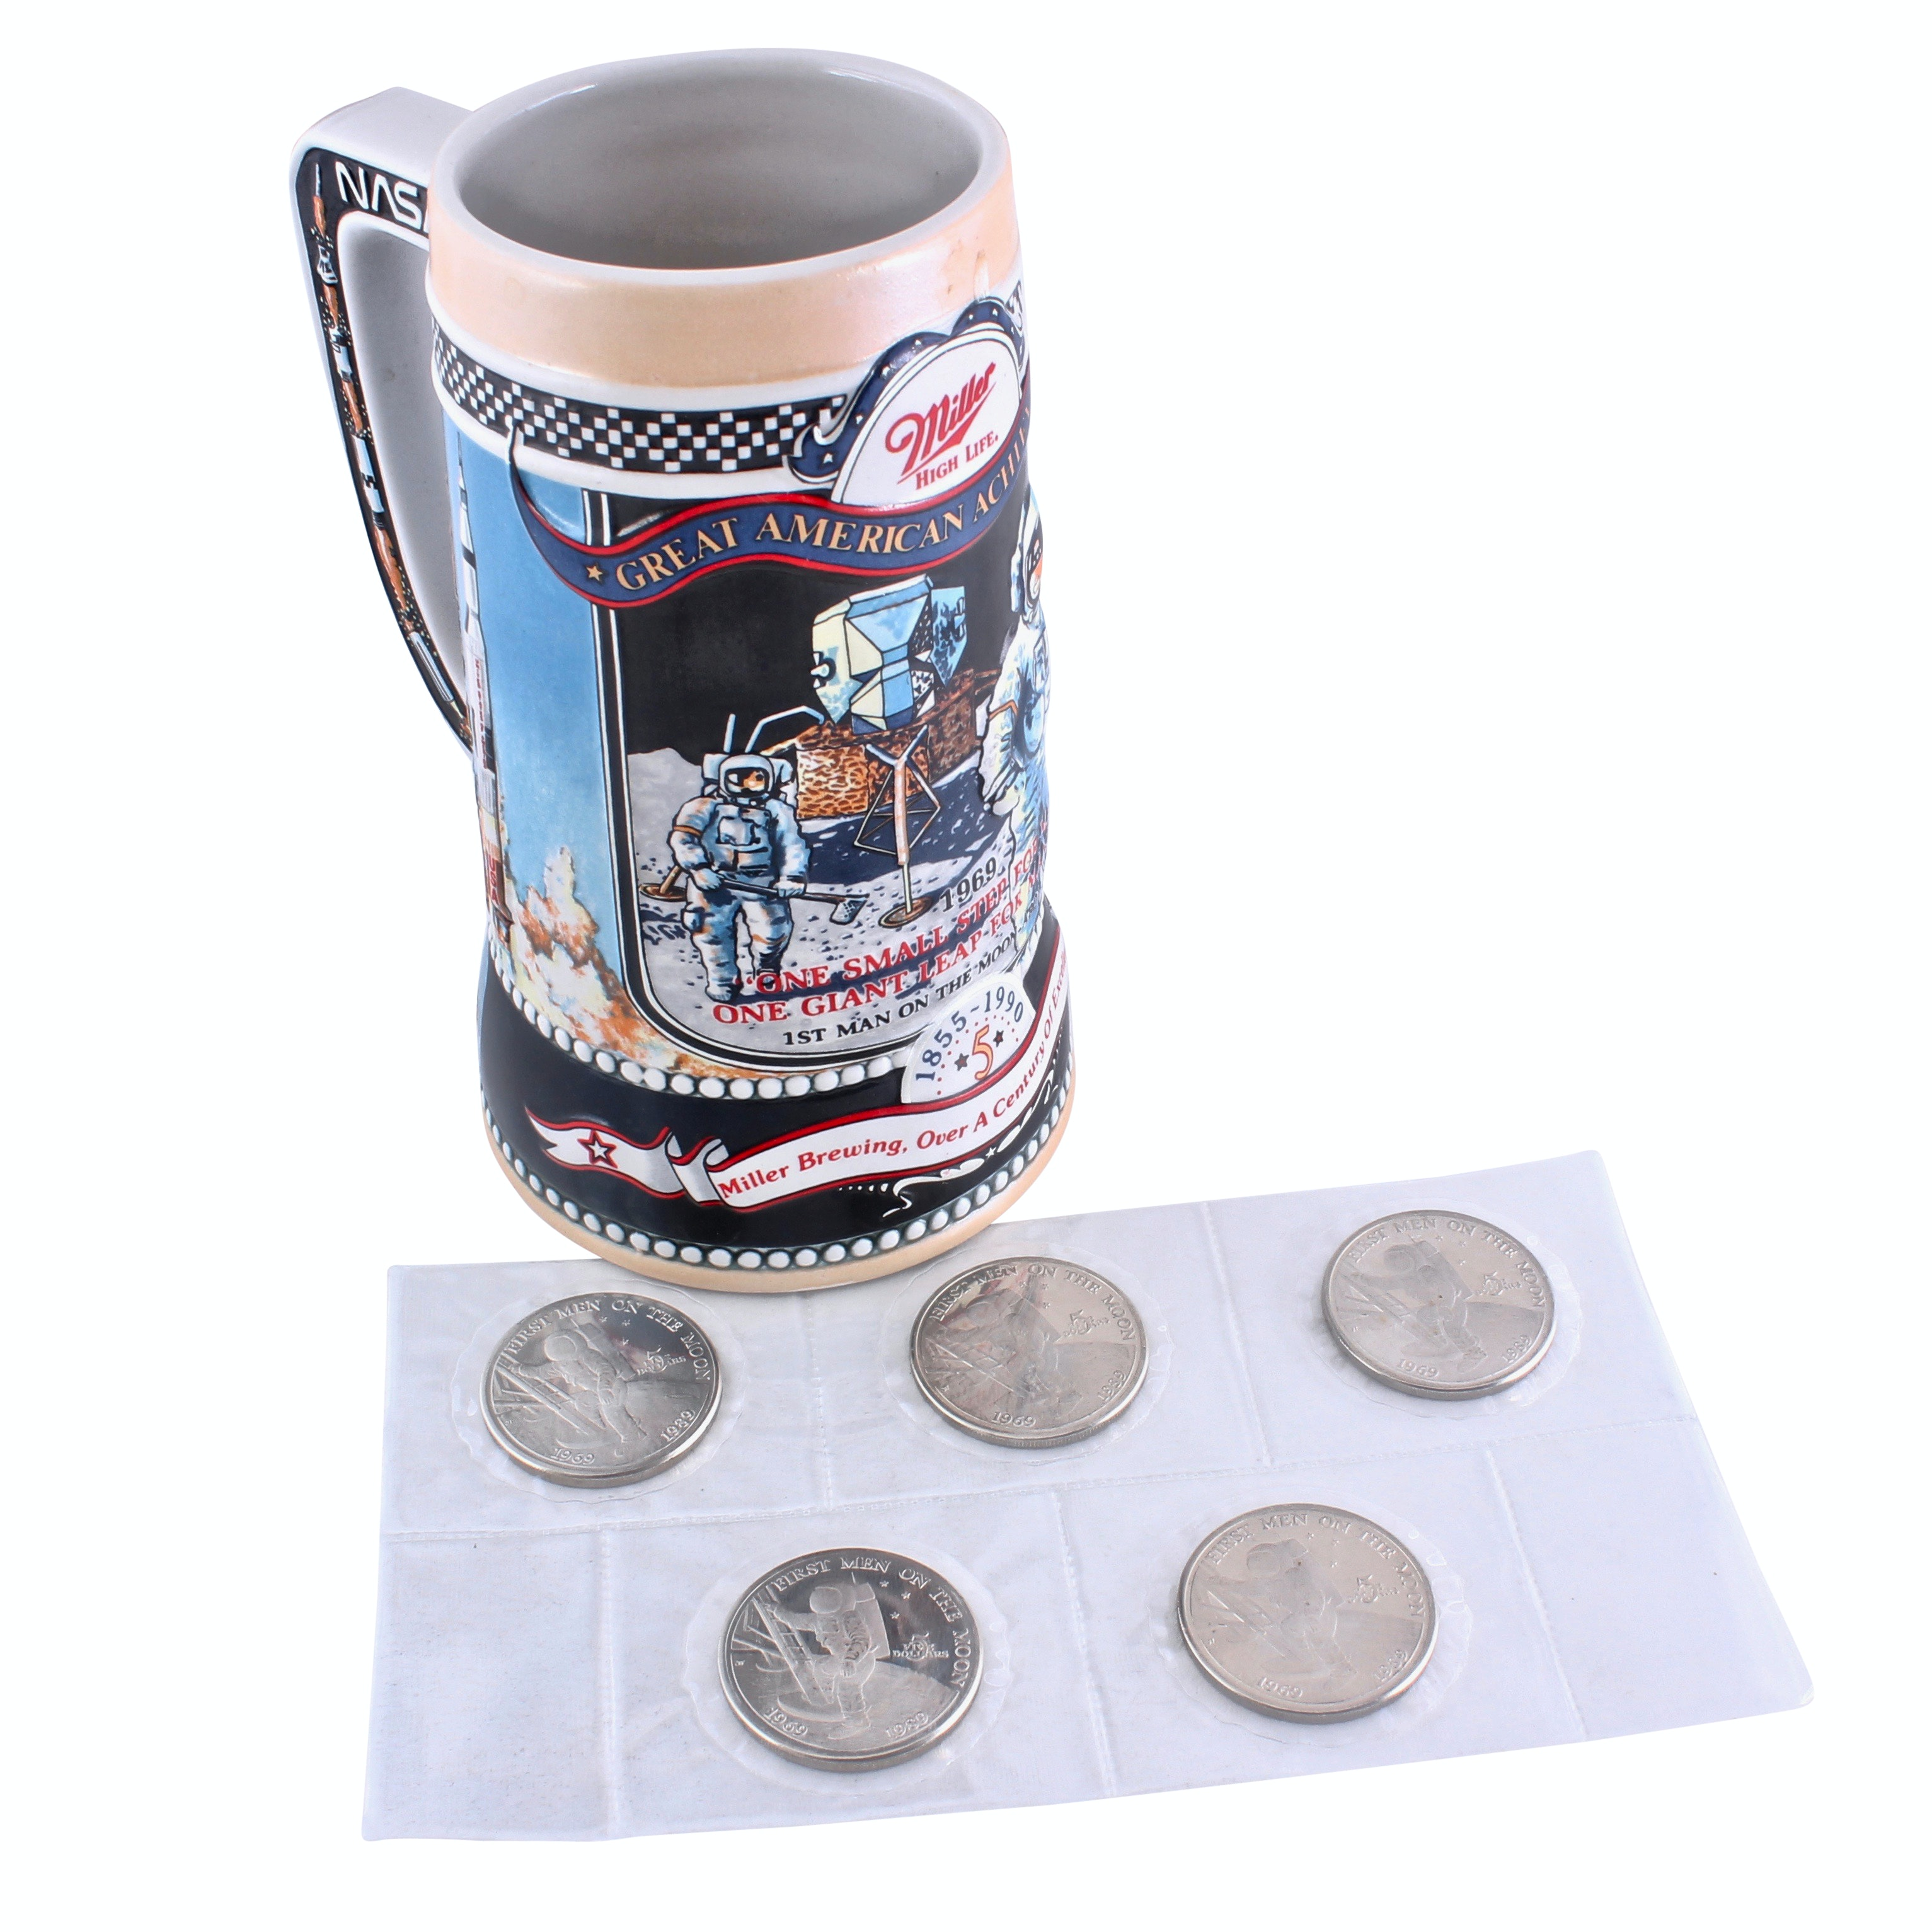 Collection of Marshall Island Five Dollar Commemorative Coins and Stein